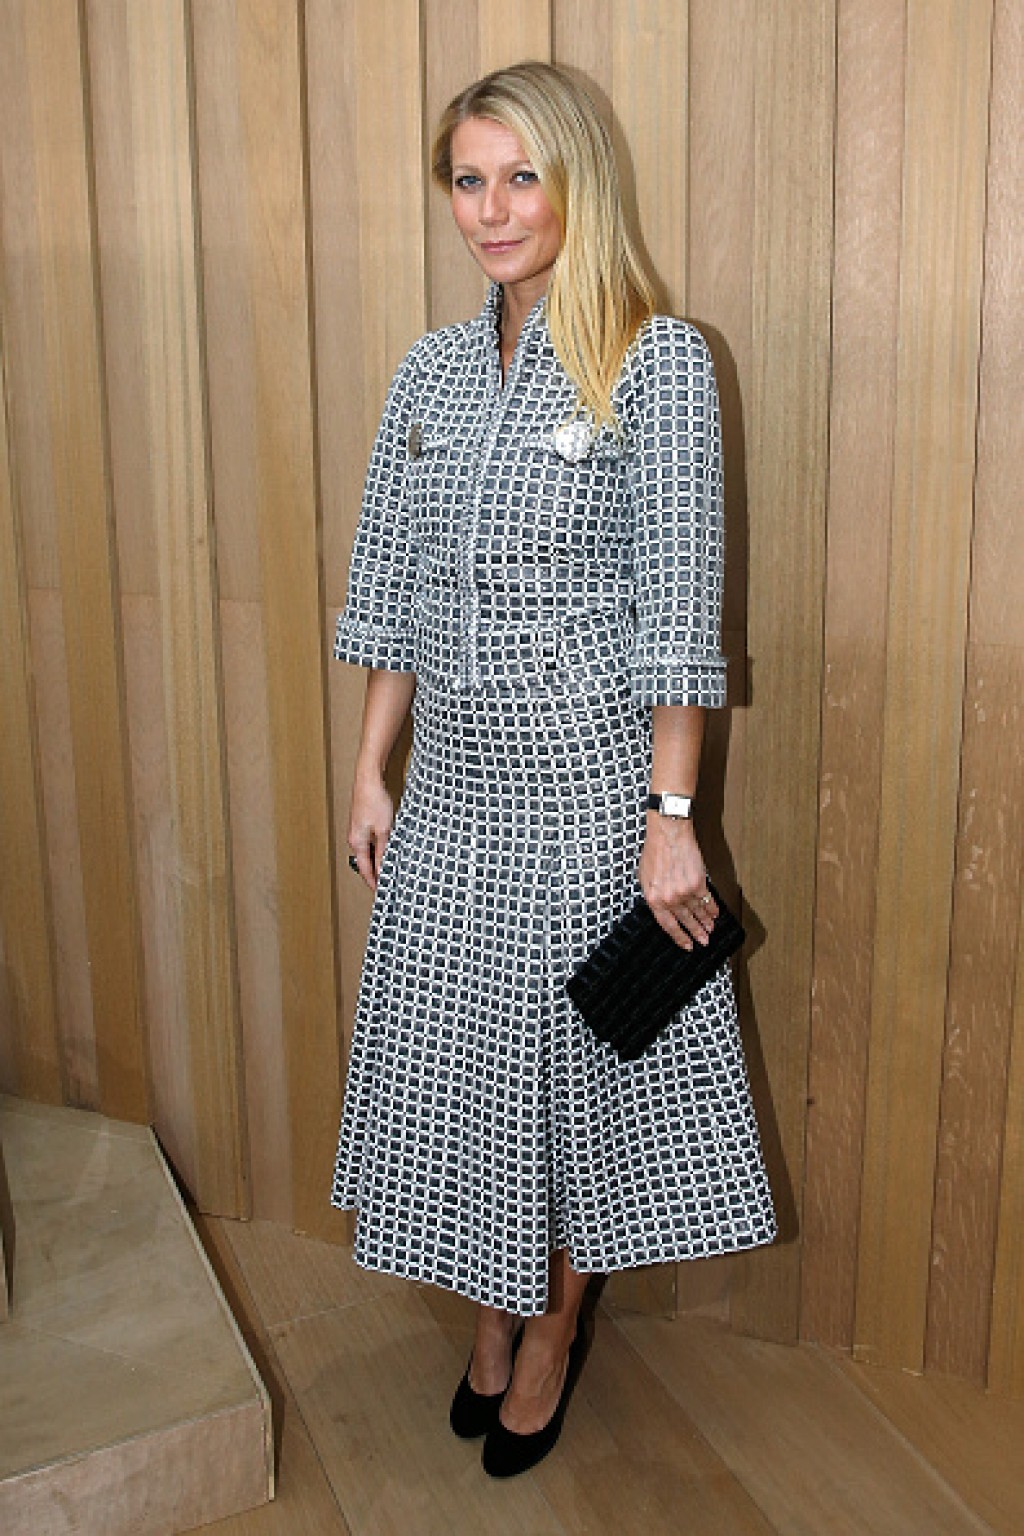 Chanel-Outside-Arrivals-Paris-Fashion-Week-Gwyneth-1024x1536